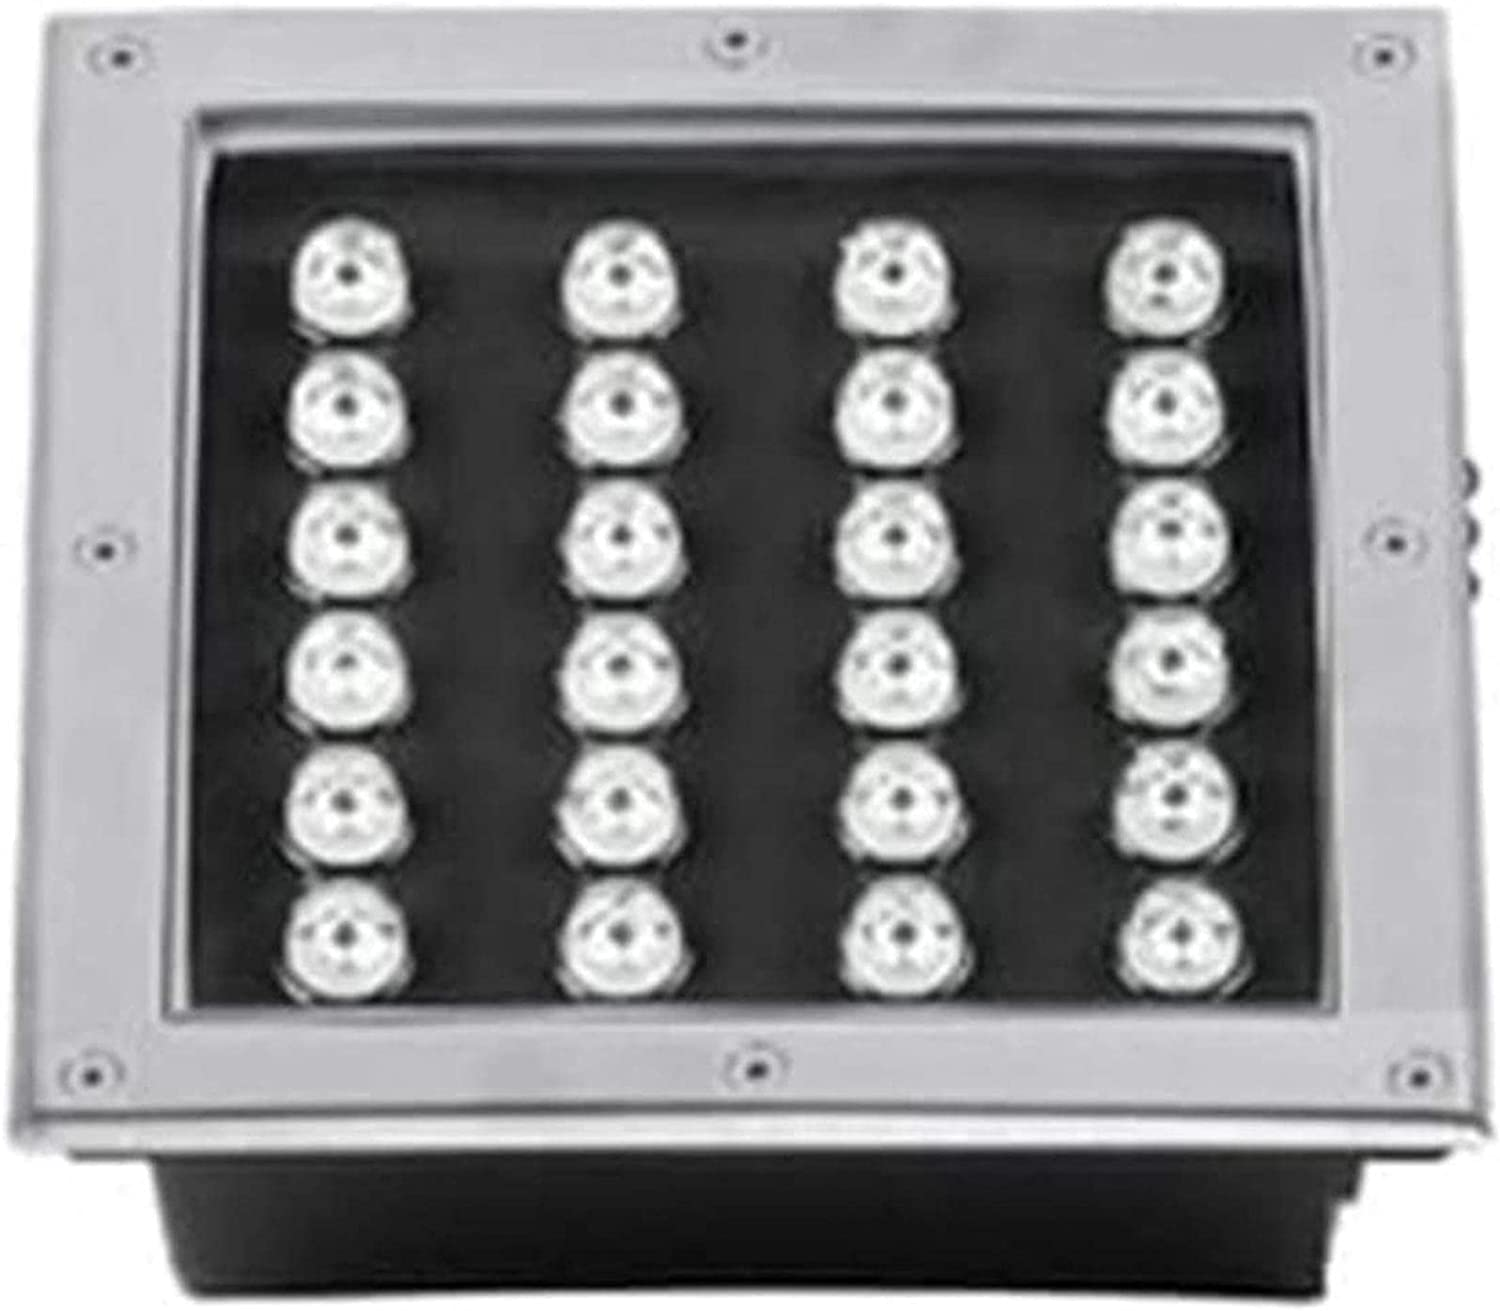 MWKLW LED [Alternative dealer] Recessed Floor Light 24W IP67 sold out Steel Stainless Square